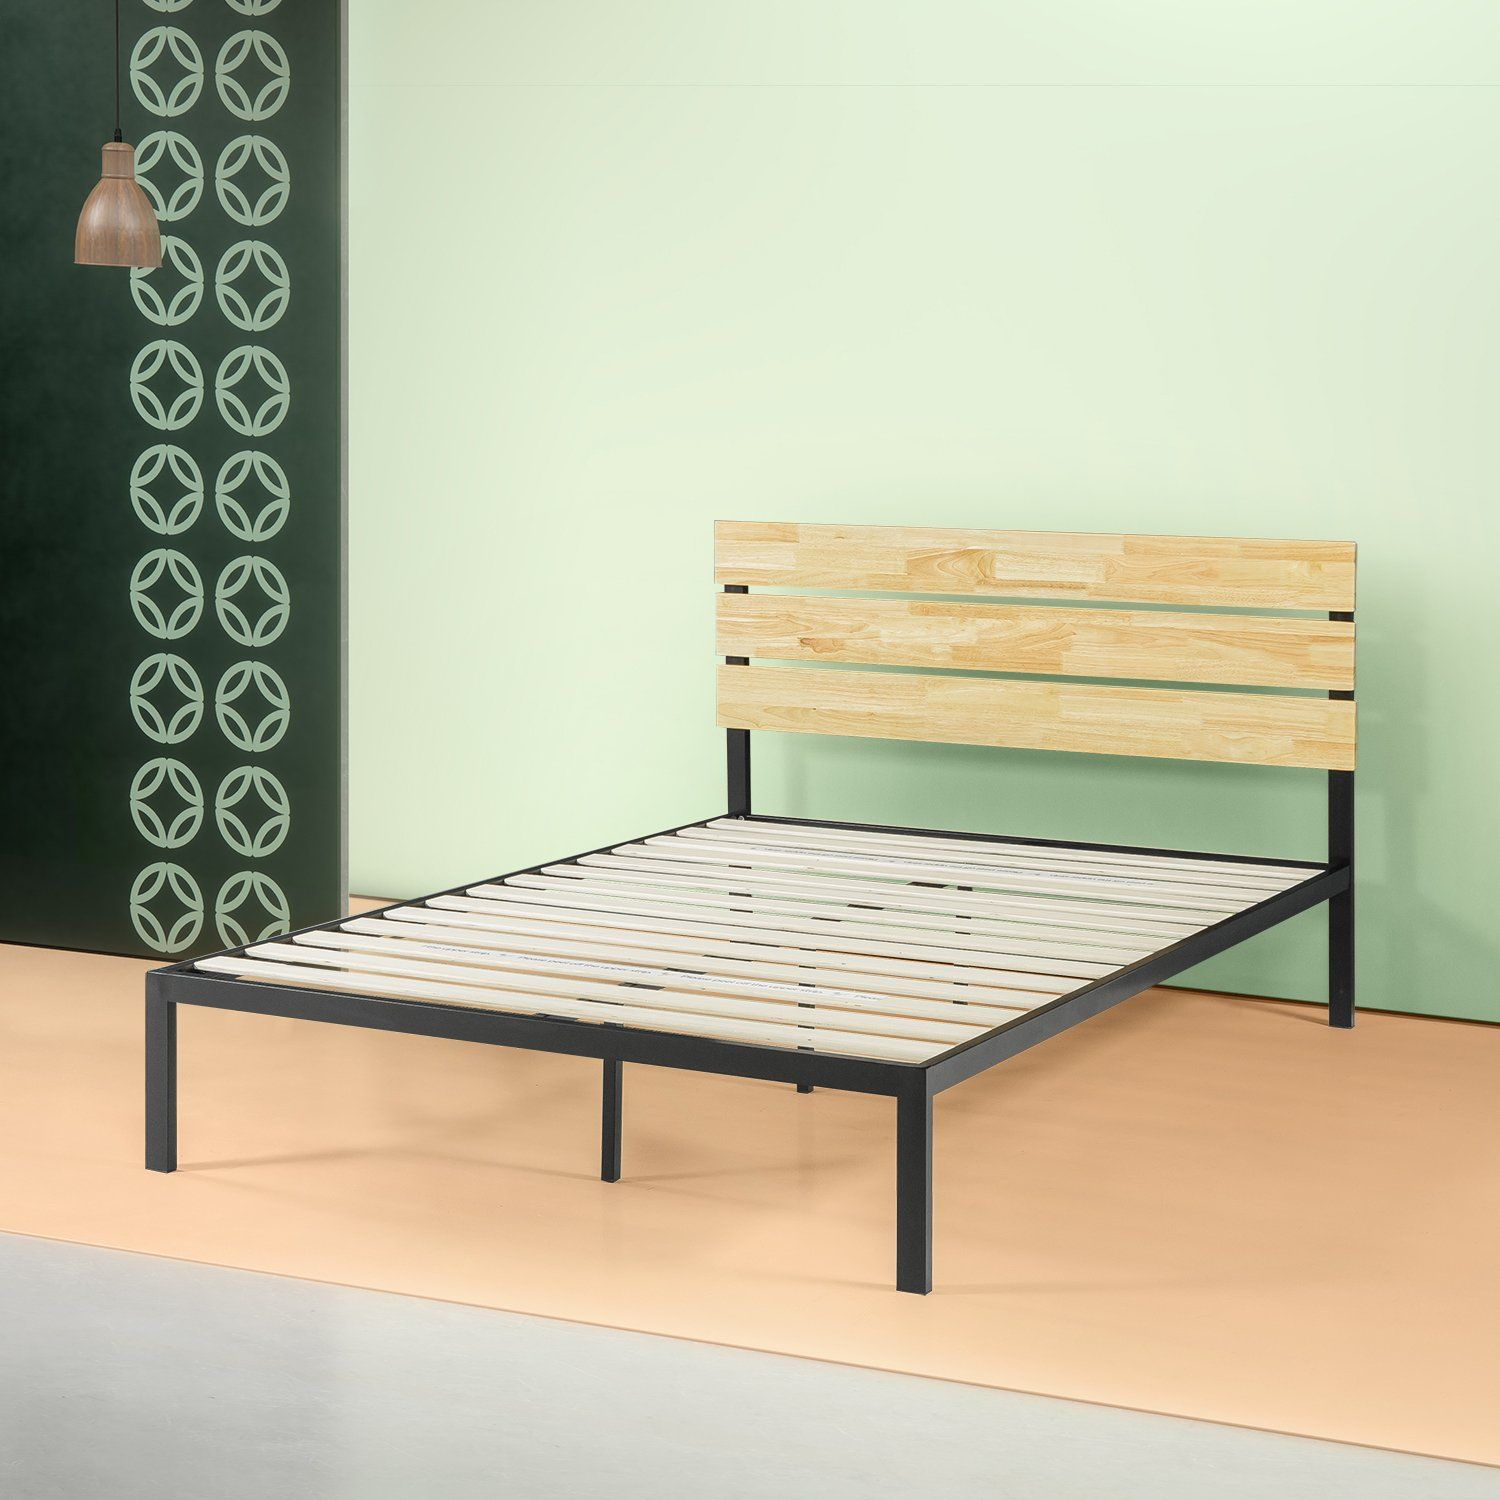 Paul Metal and Wood Platform Bed Frame (With images